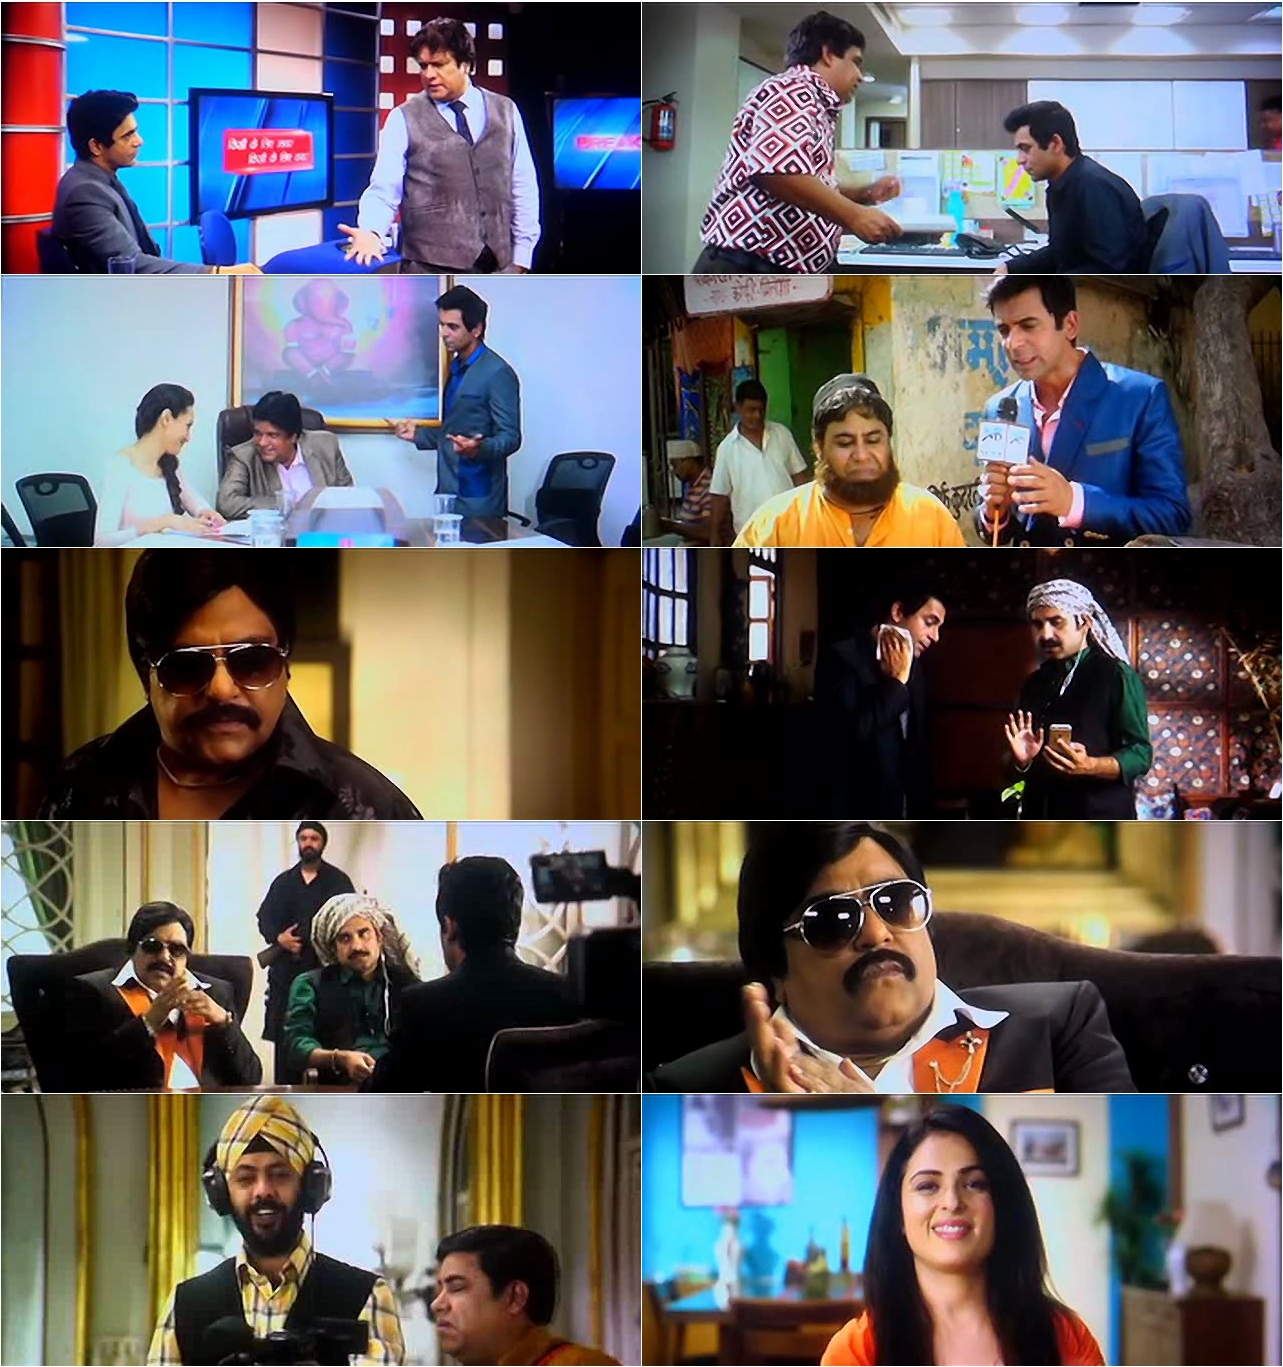 Coffee With D Movie Screenshot